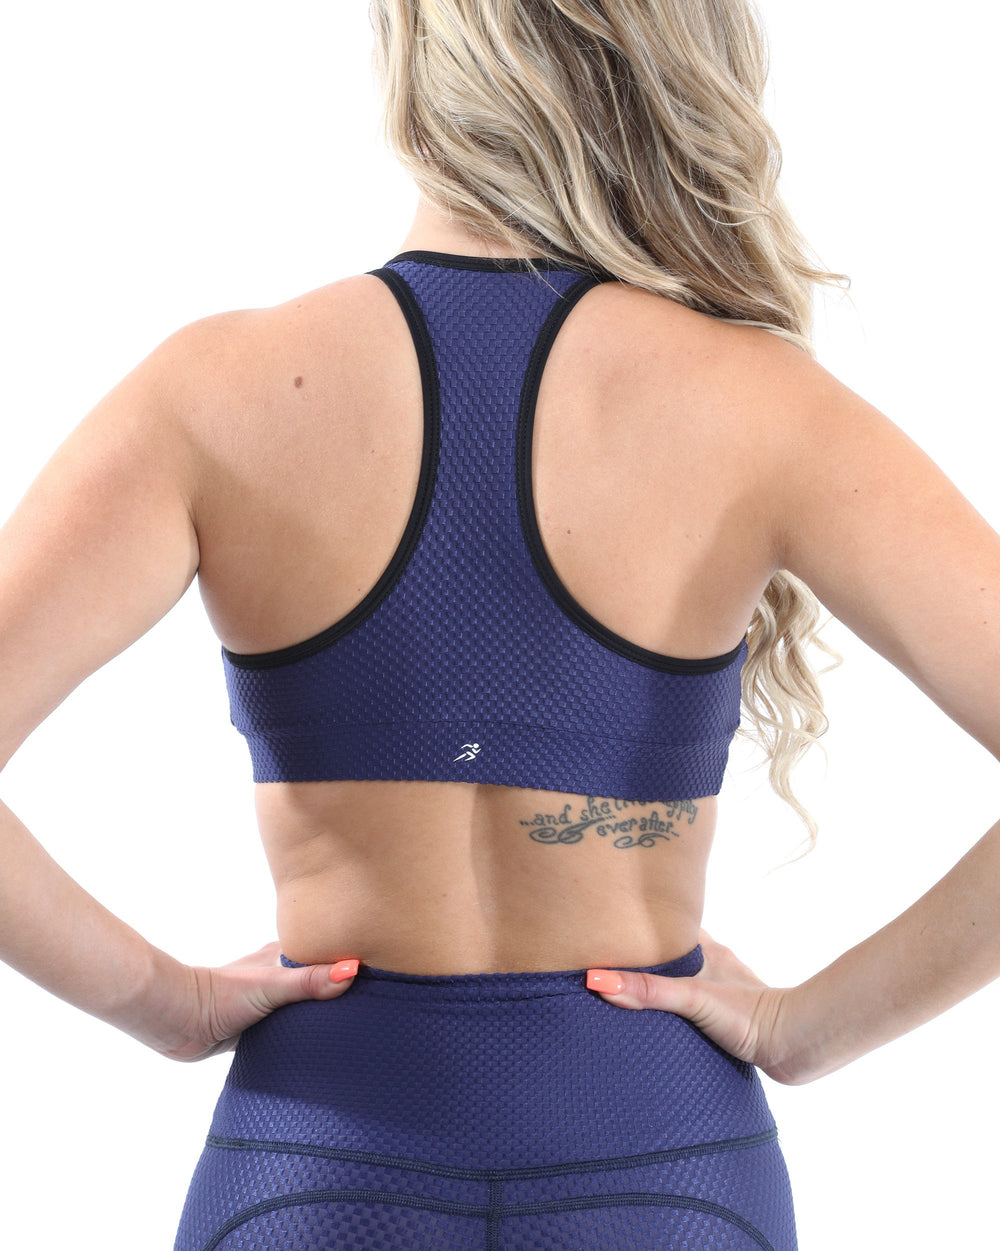 Venice Activewear Sports Bra - Navy [MADE IN ITALY]